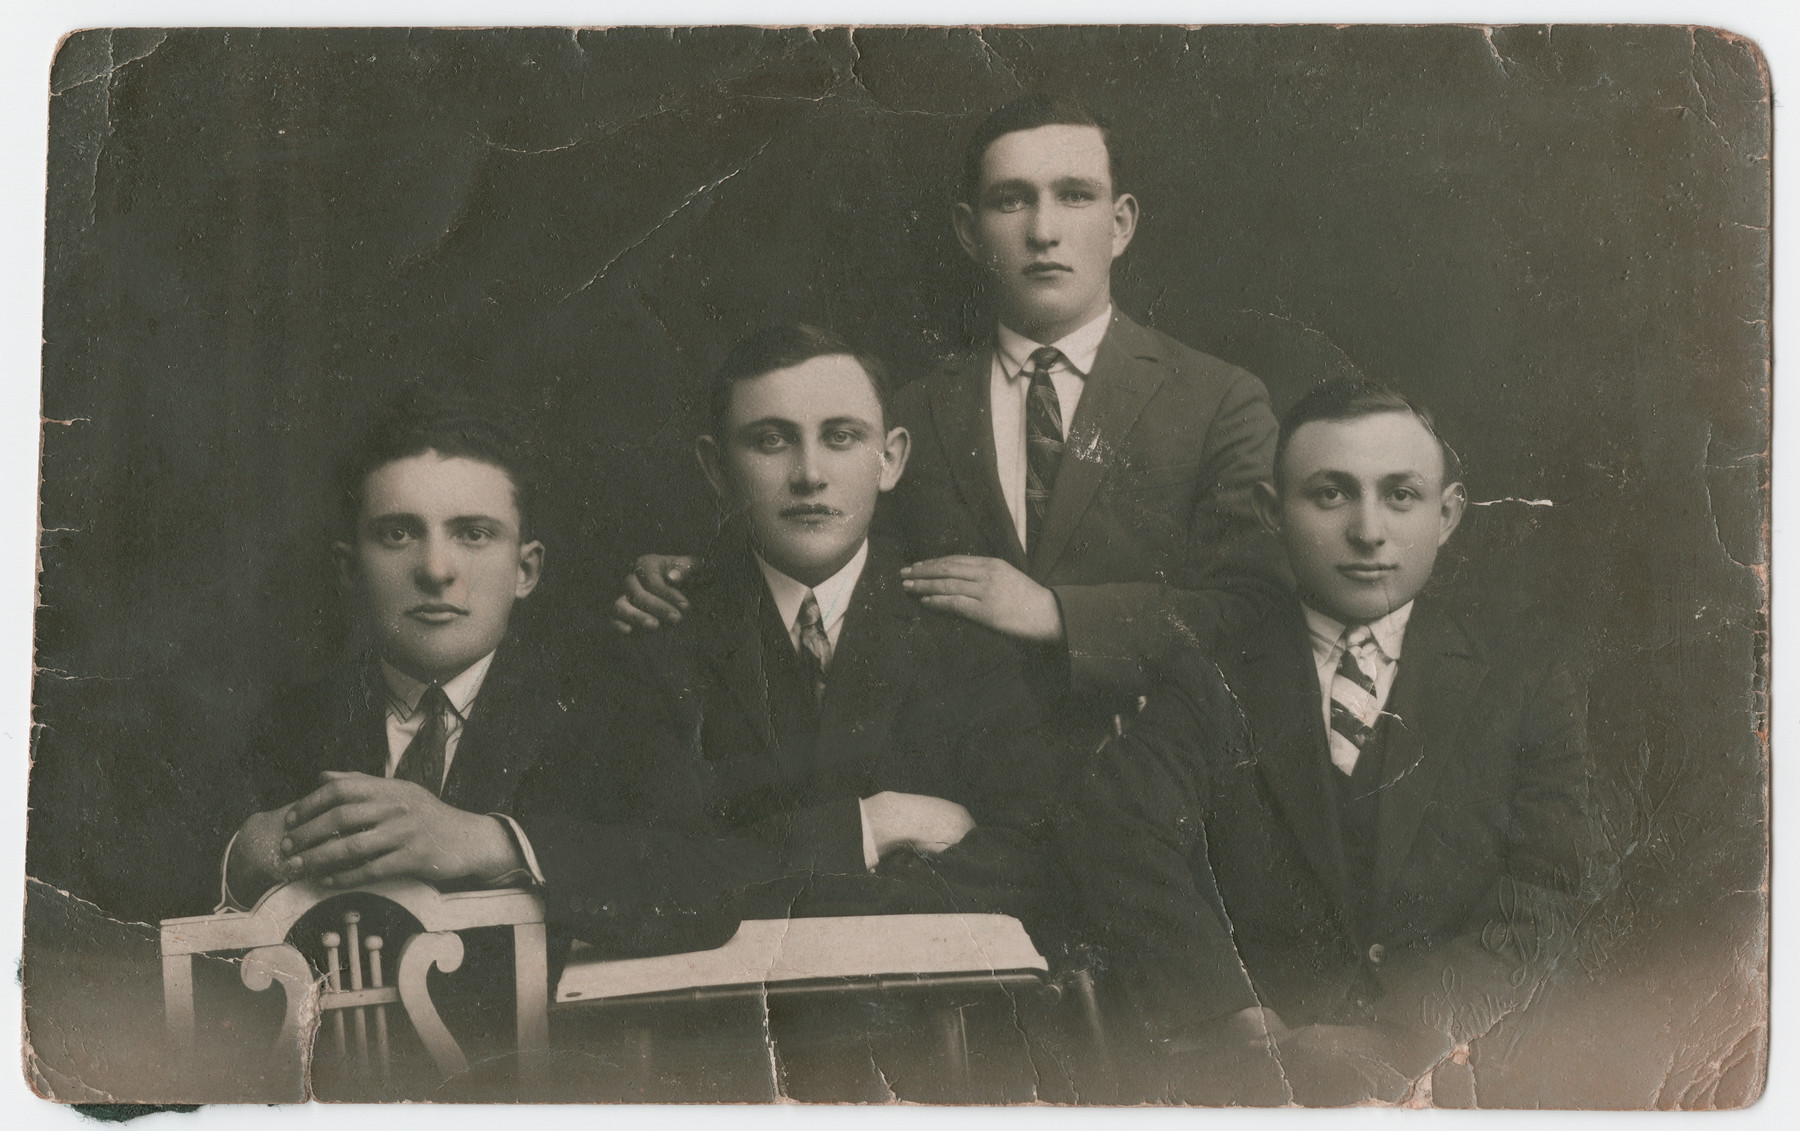 Left to right Lemmel Bernstein, Cheil Makowski, Shlomo Blum, Cheskel Kleinhaus.    Shlomo Blum was the only one to survive the Holocaust.